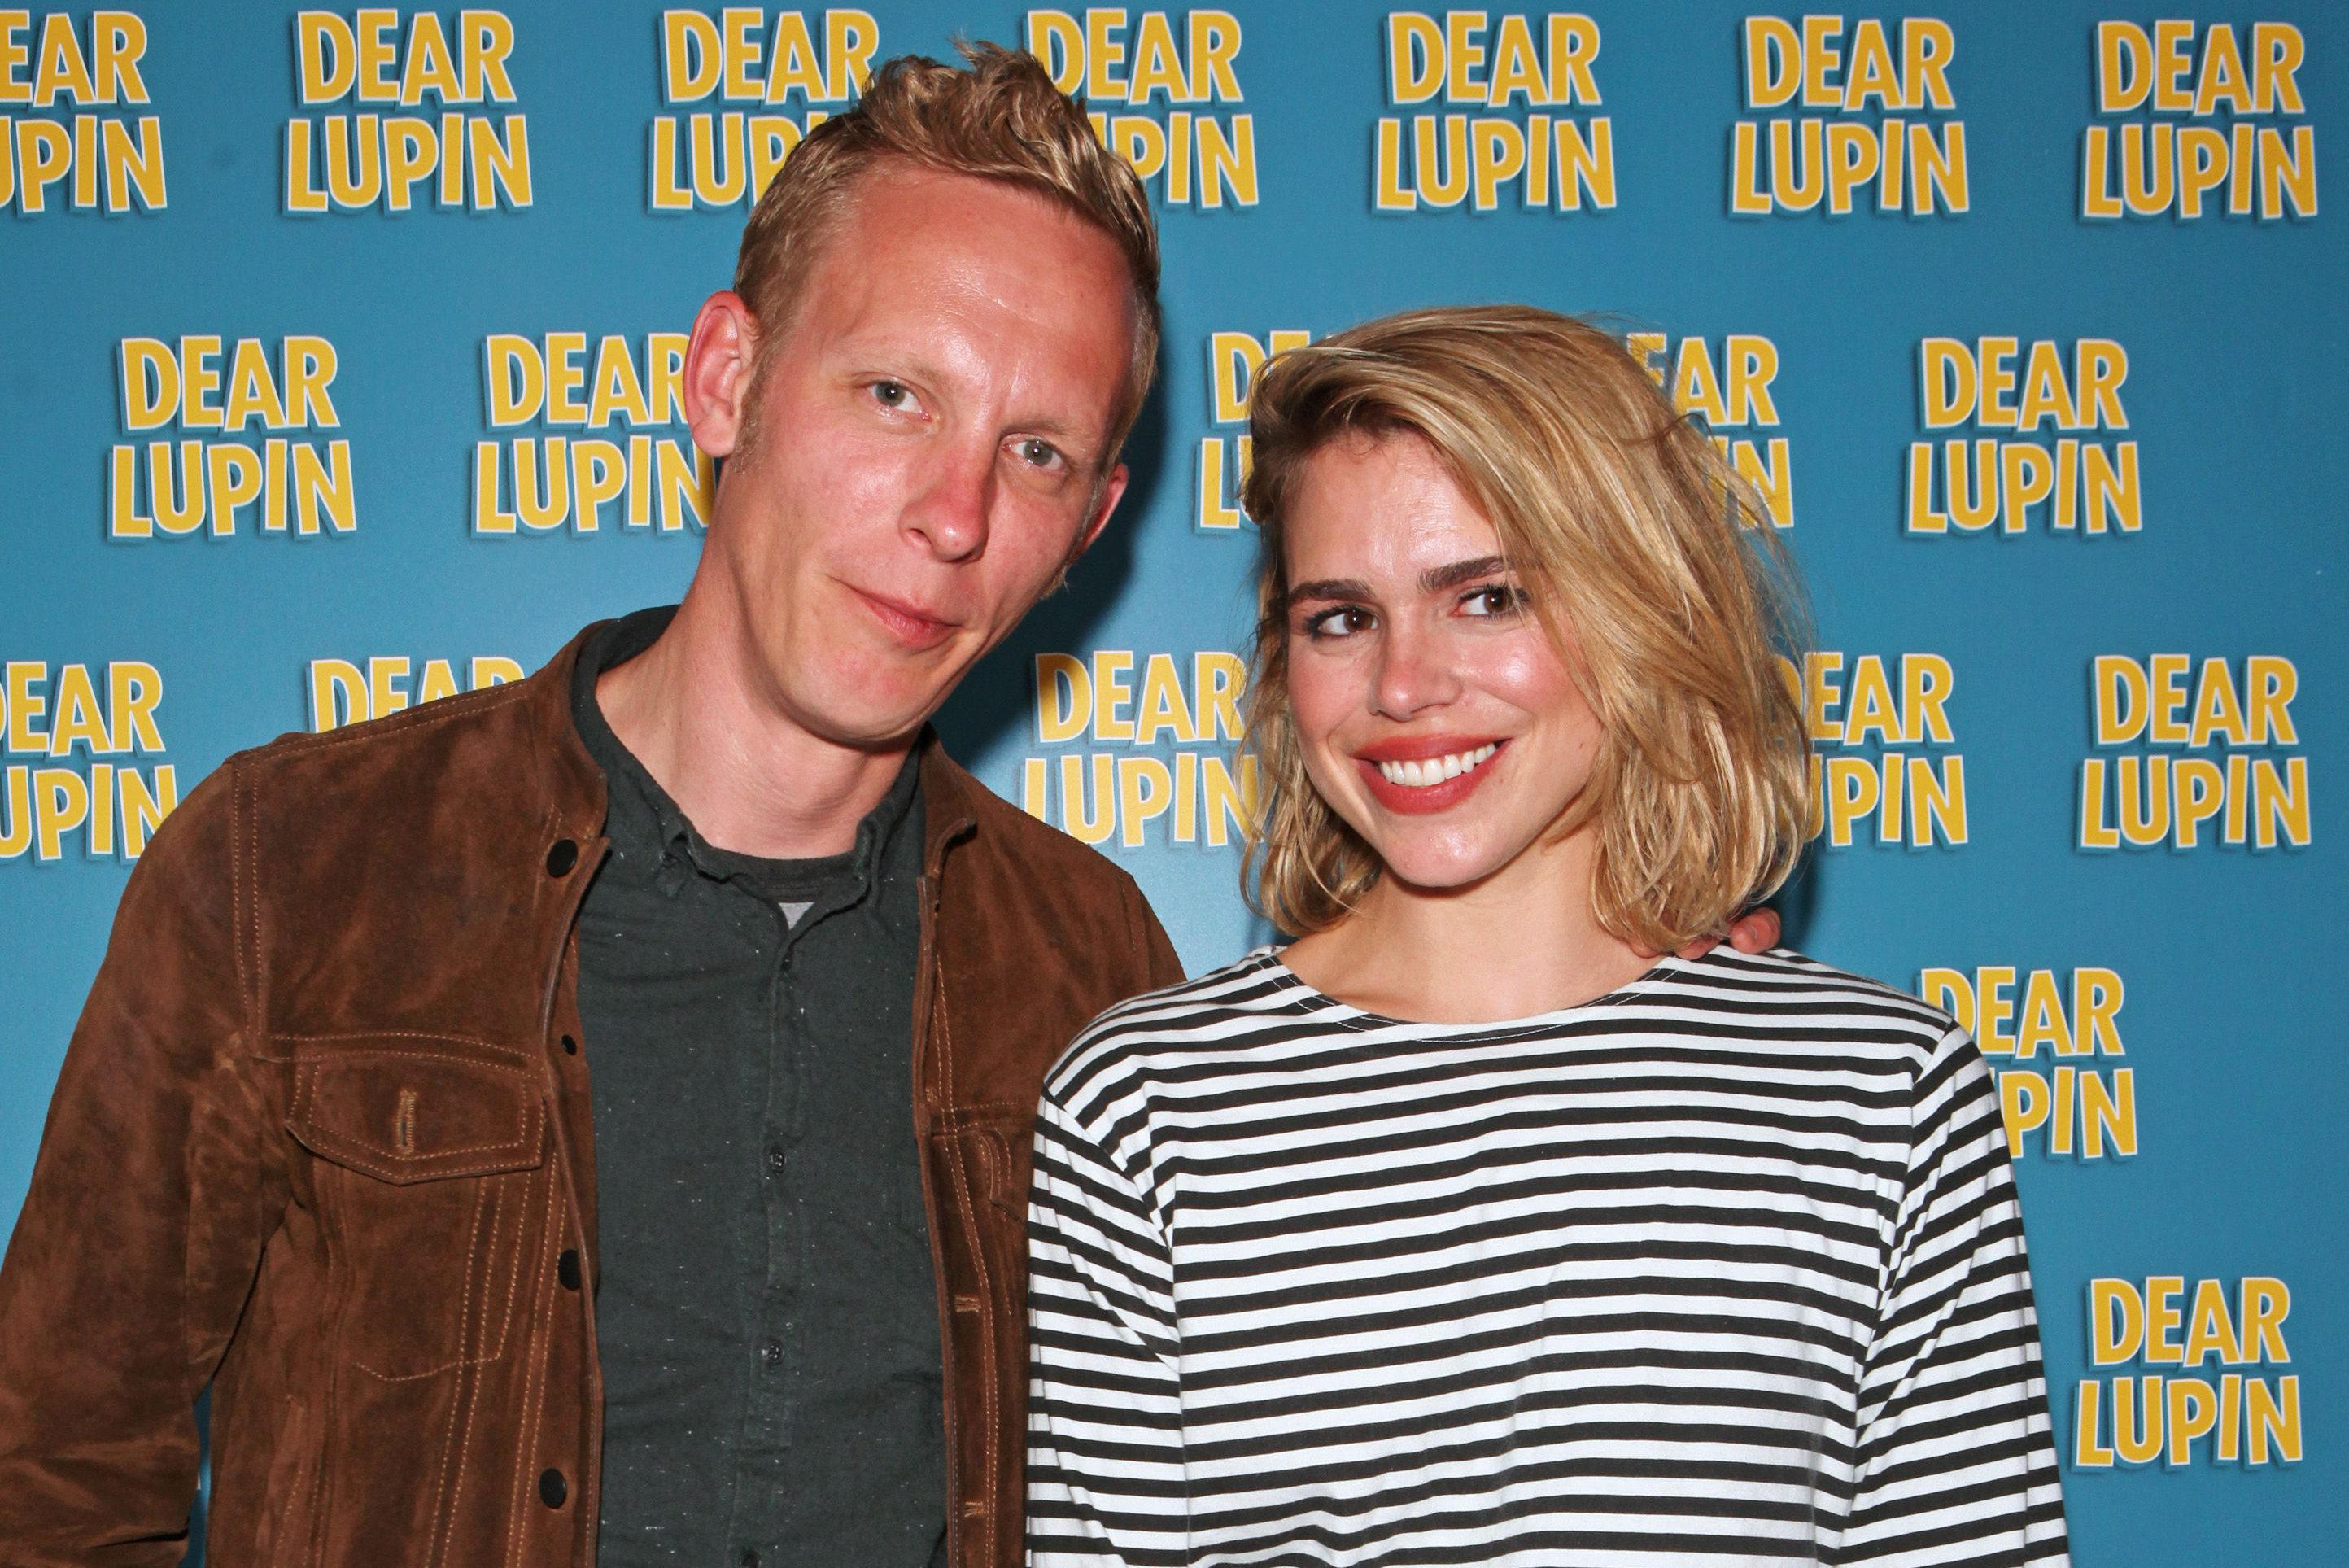 Laurence Fox admits he's been suffering from panic attacks and insomnia since Billie Piper split